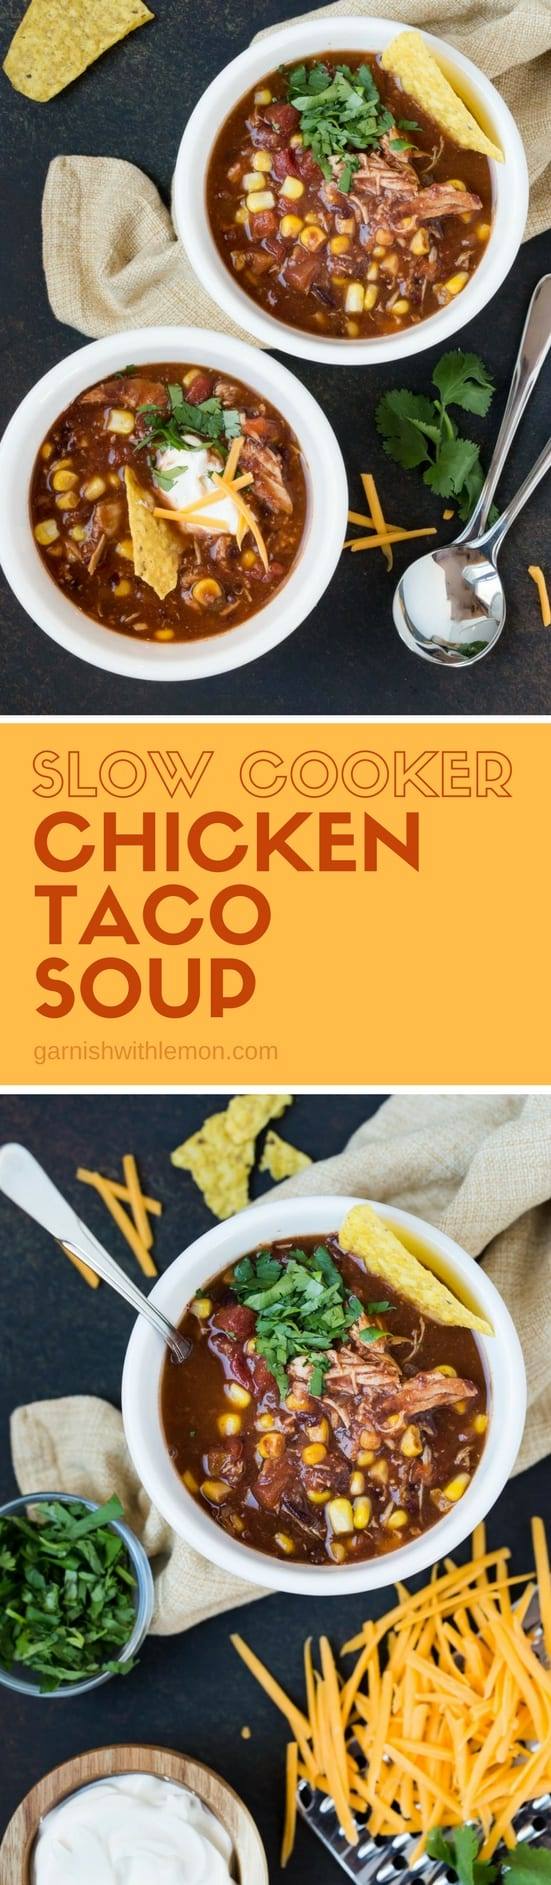 Collage images of slow cooker chicken taco soup with chips, cheddar cheese and sour cream for garnishes.